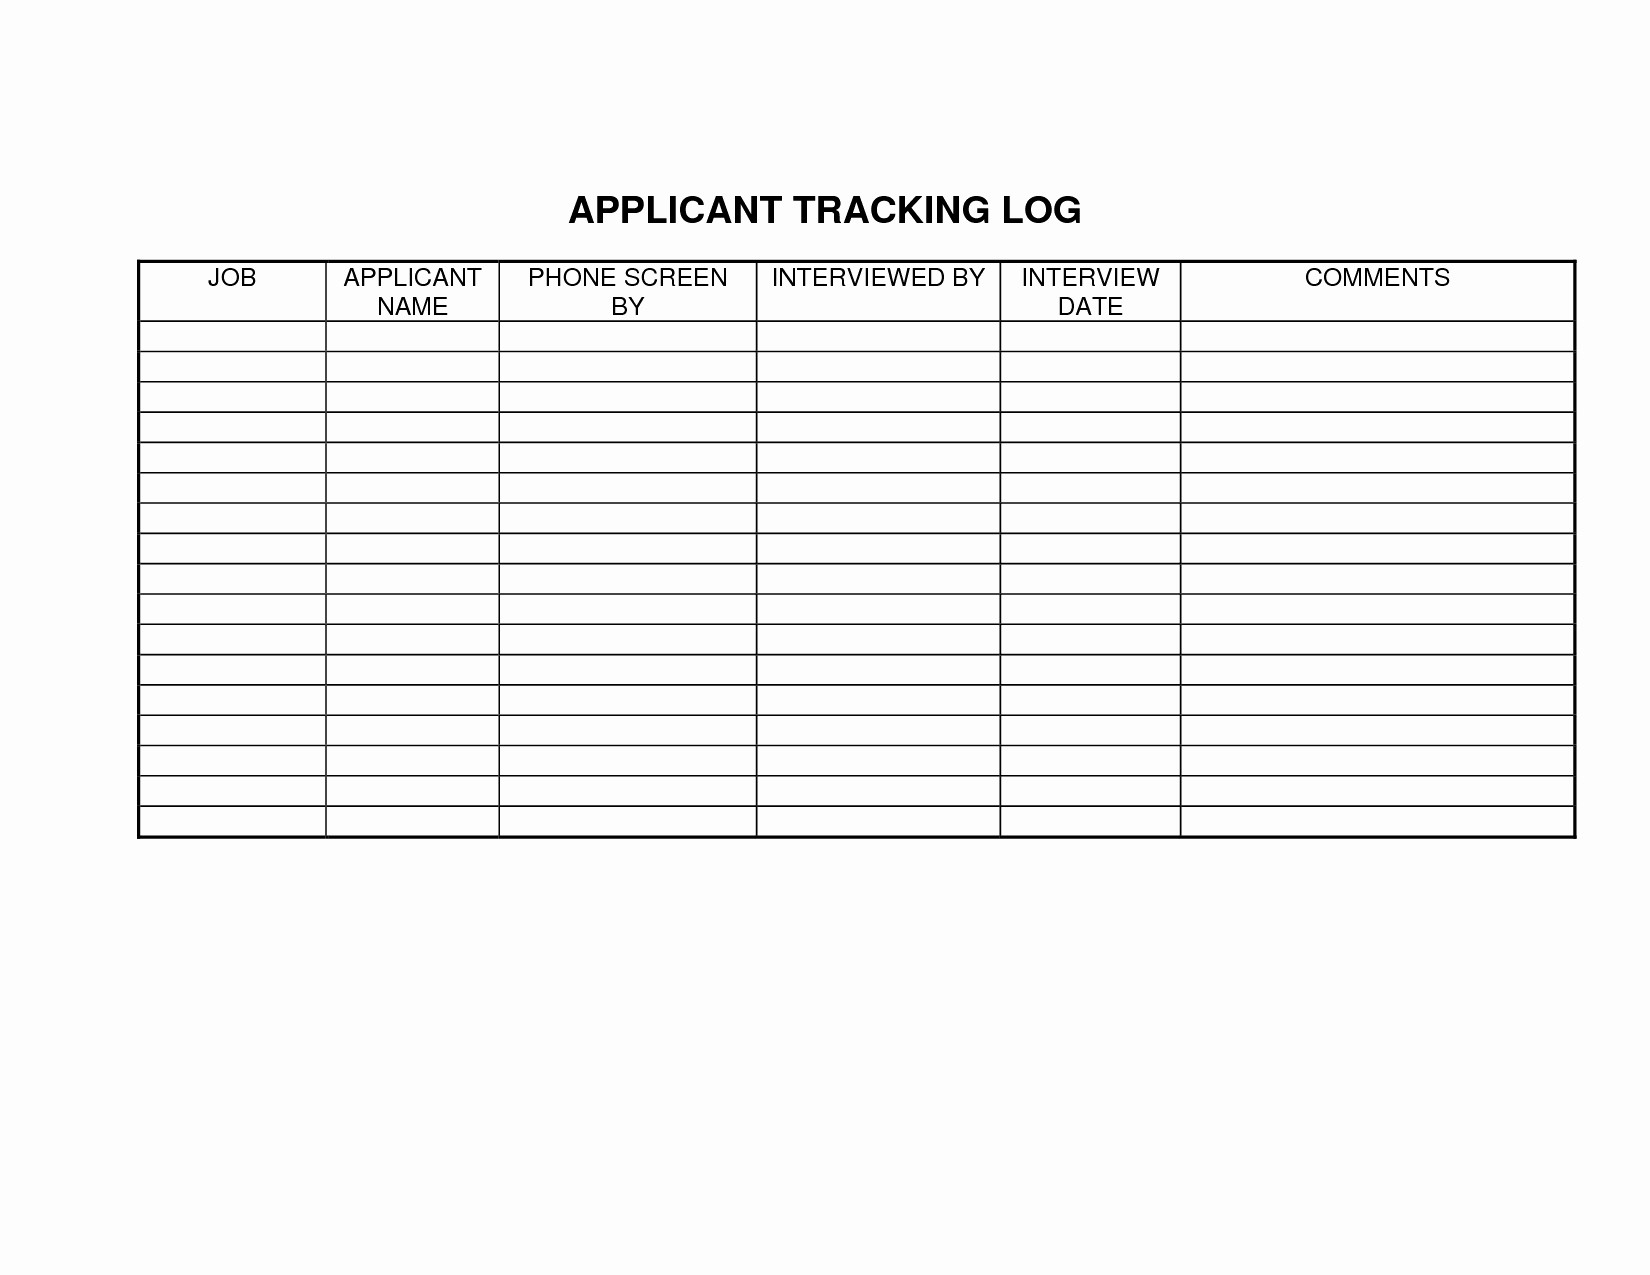 Job Tracking Spreadsheet In Job Tracking Spreadsheet Template Rocket League Xbofresh Free Cost Job Tracking Spreadsheet Google Spreadshee Google Spreadshee daily job tracking spreadsheet